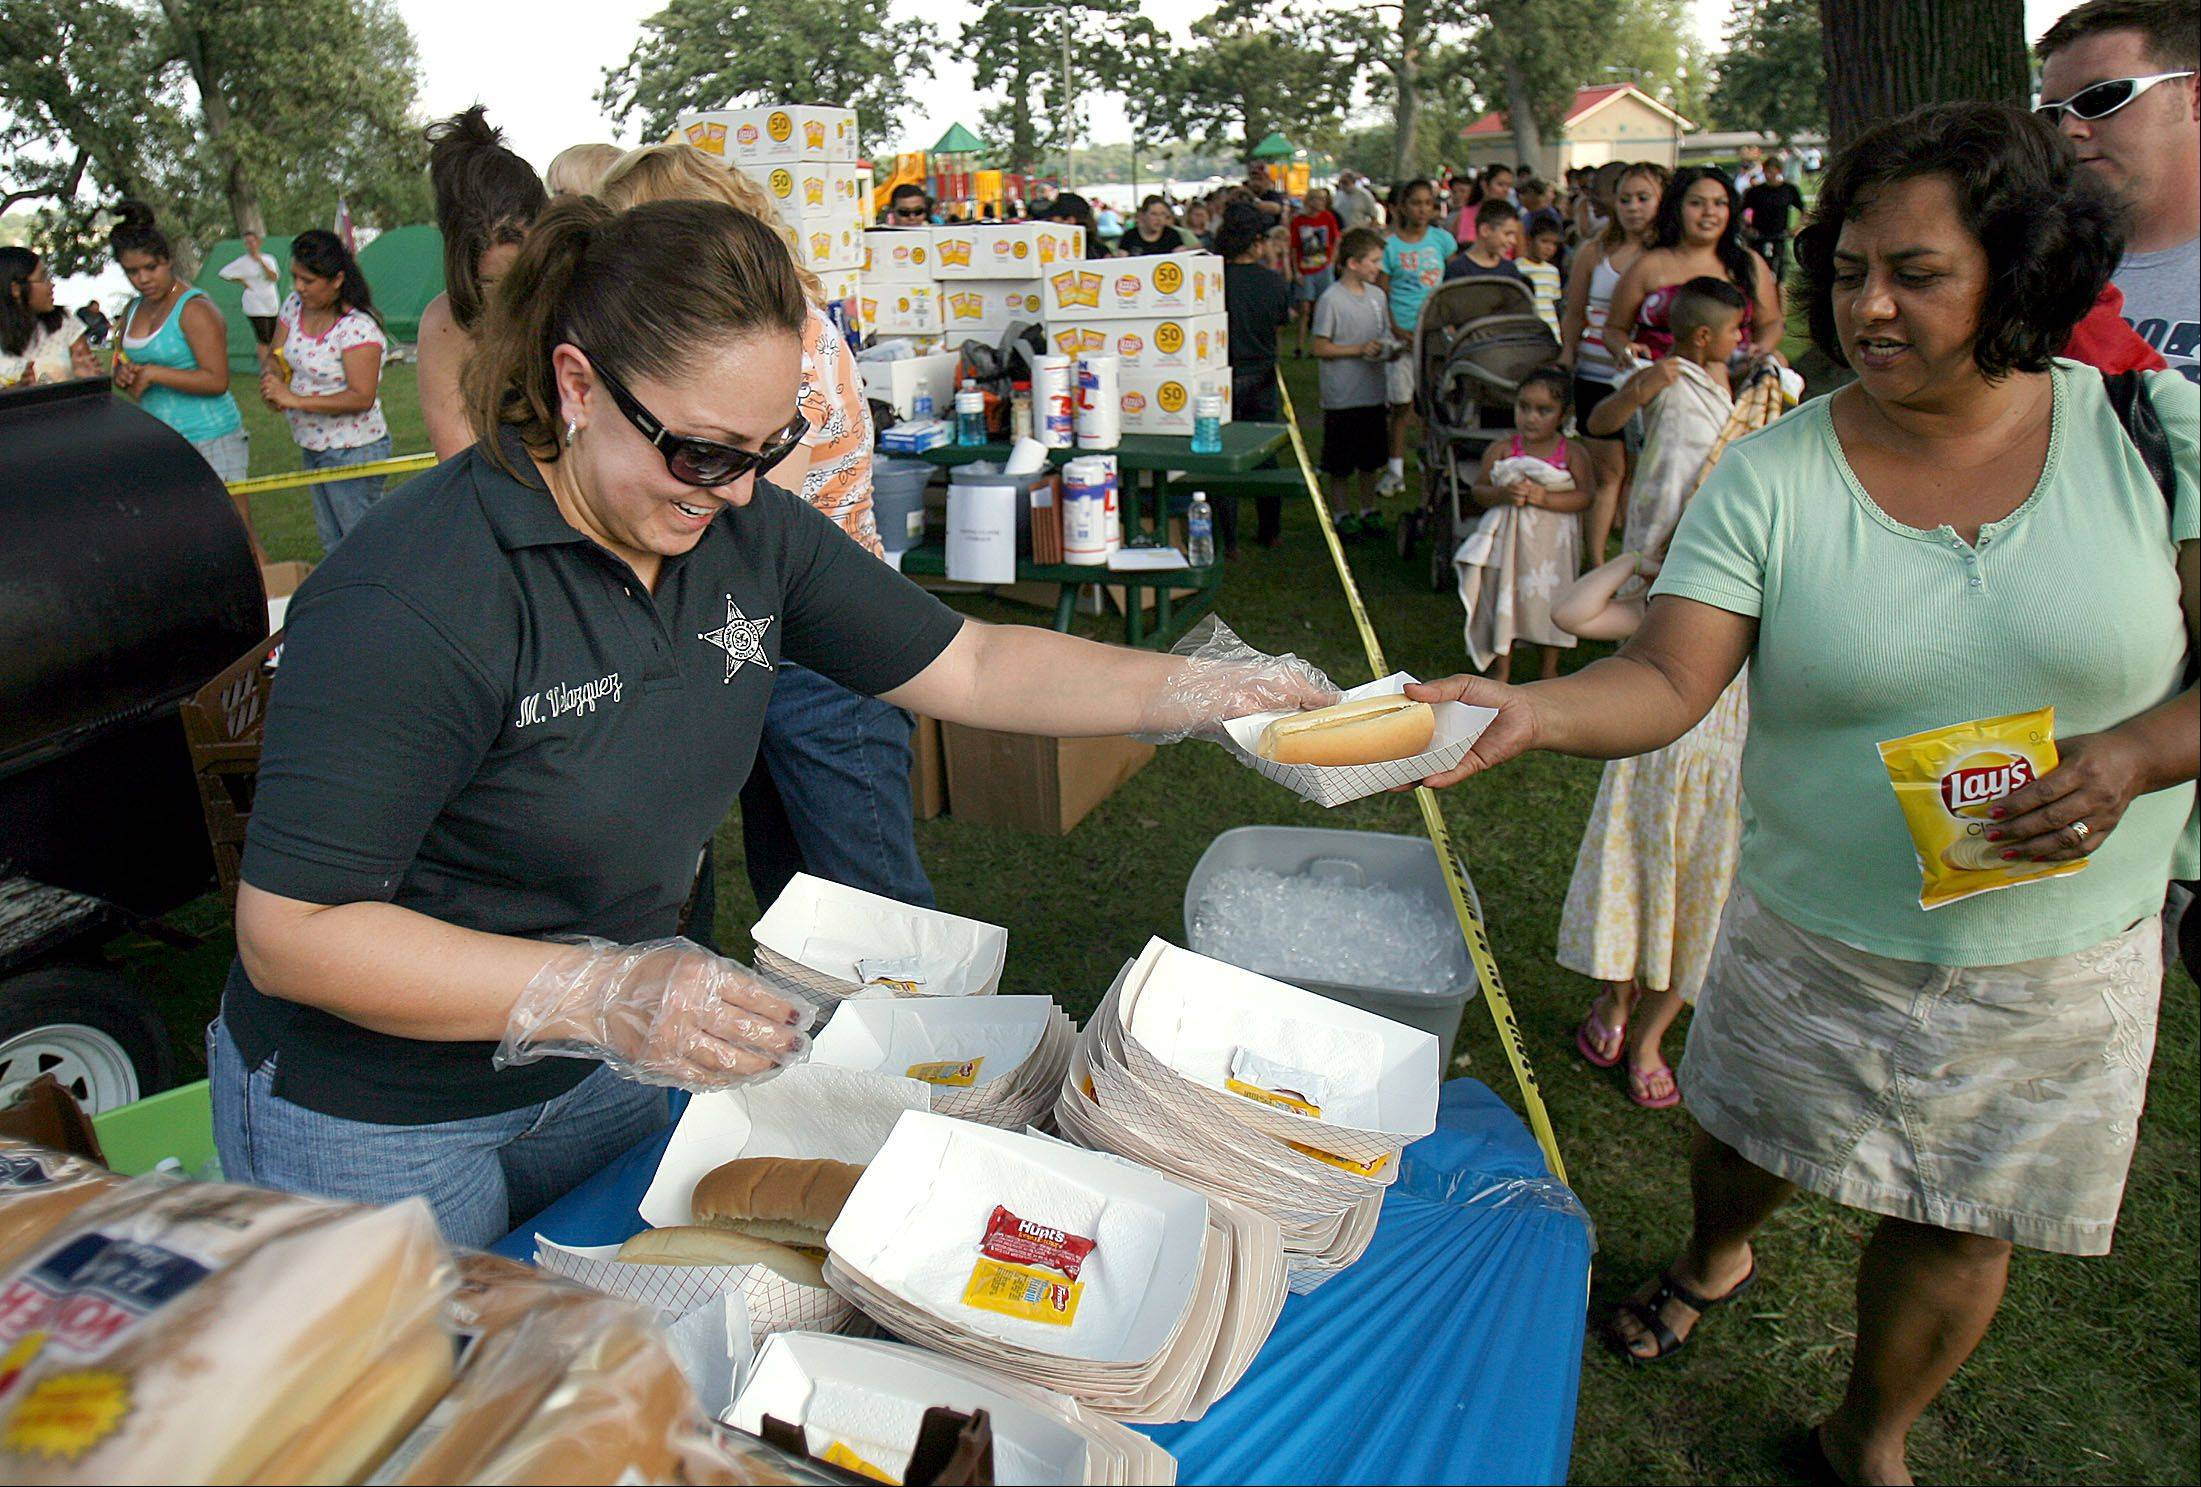 Last year's Round Lake Beach National Night Out event included food and festivities.